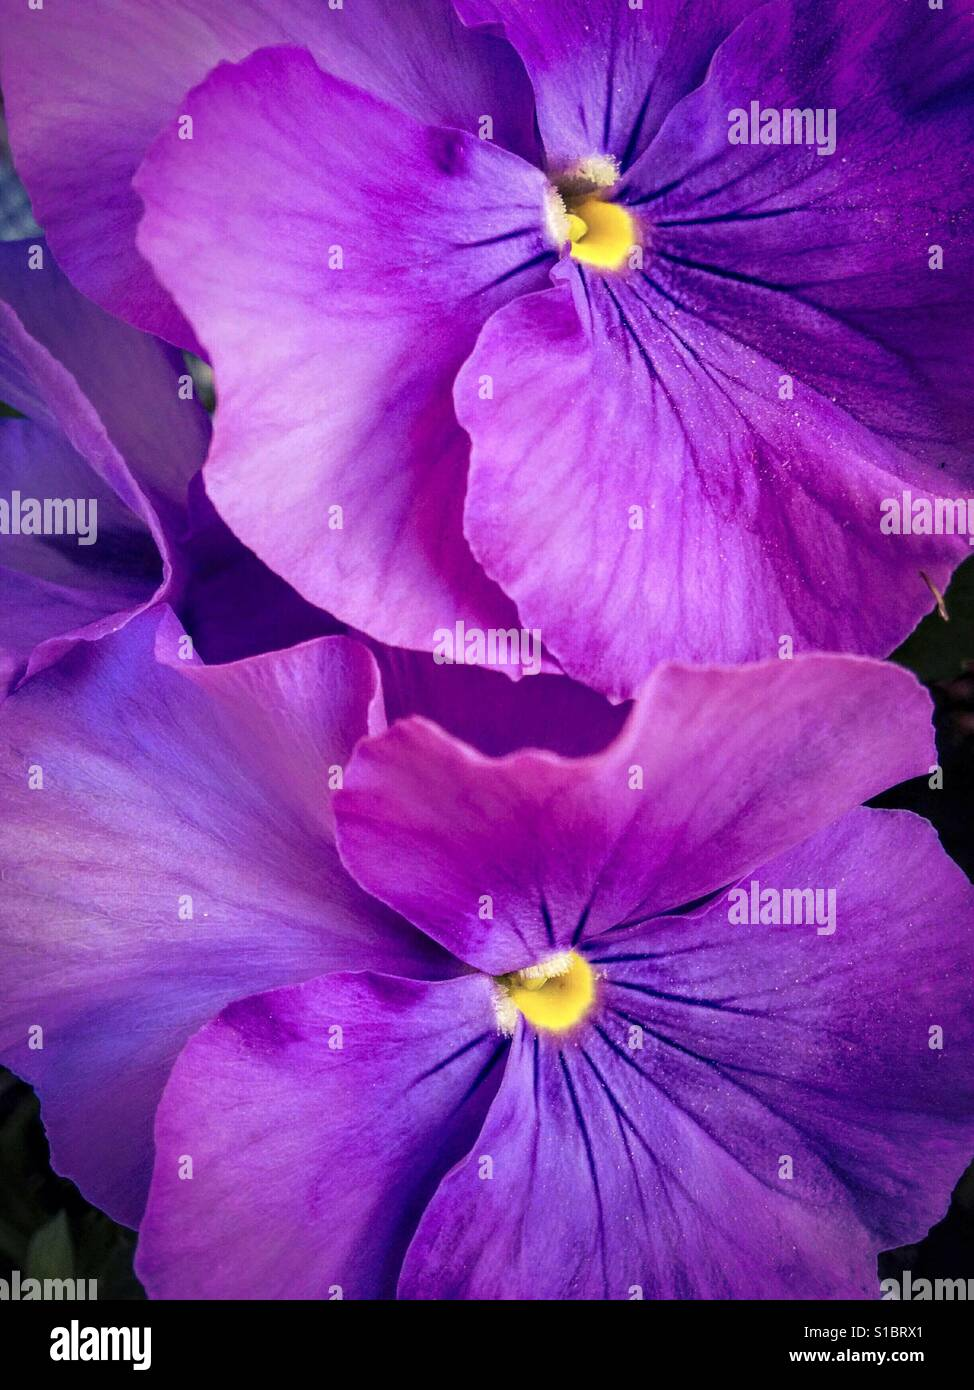 Pansy flowers. - Stock Image